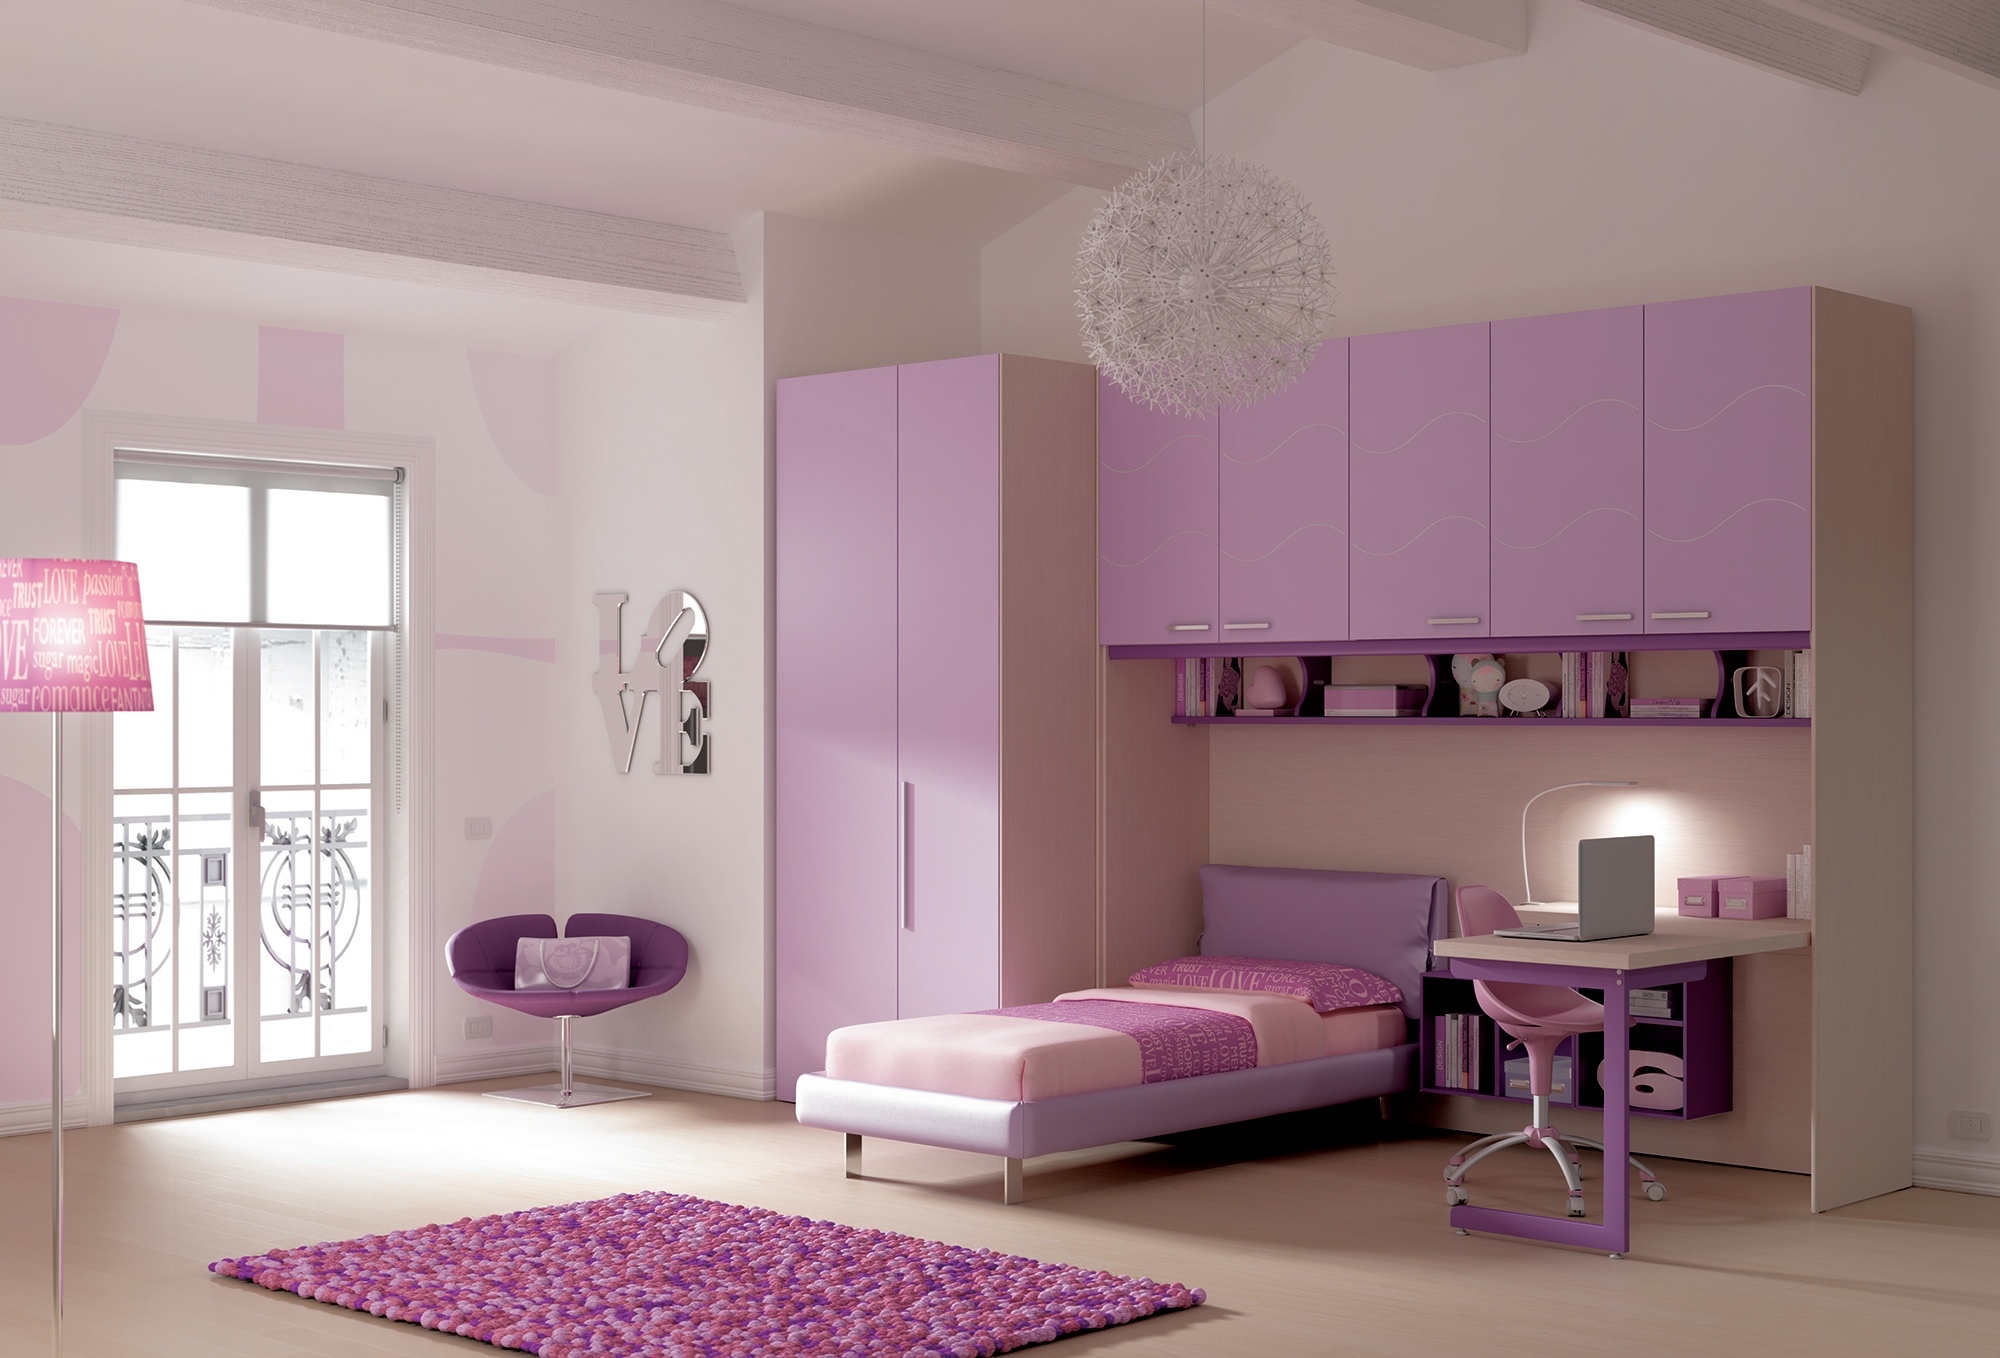 chambre enfant avec lit simple pour fille moretti compact so nuit. Black Bedroom Furniture Sets. Home Design Ideas